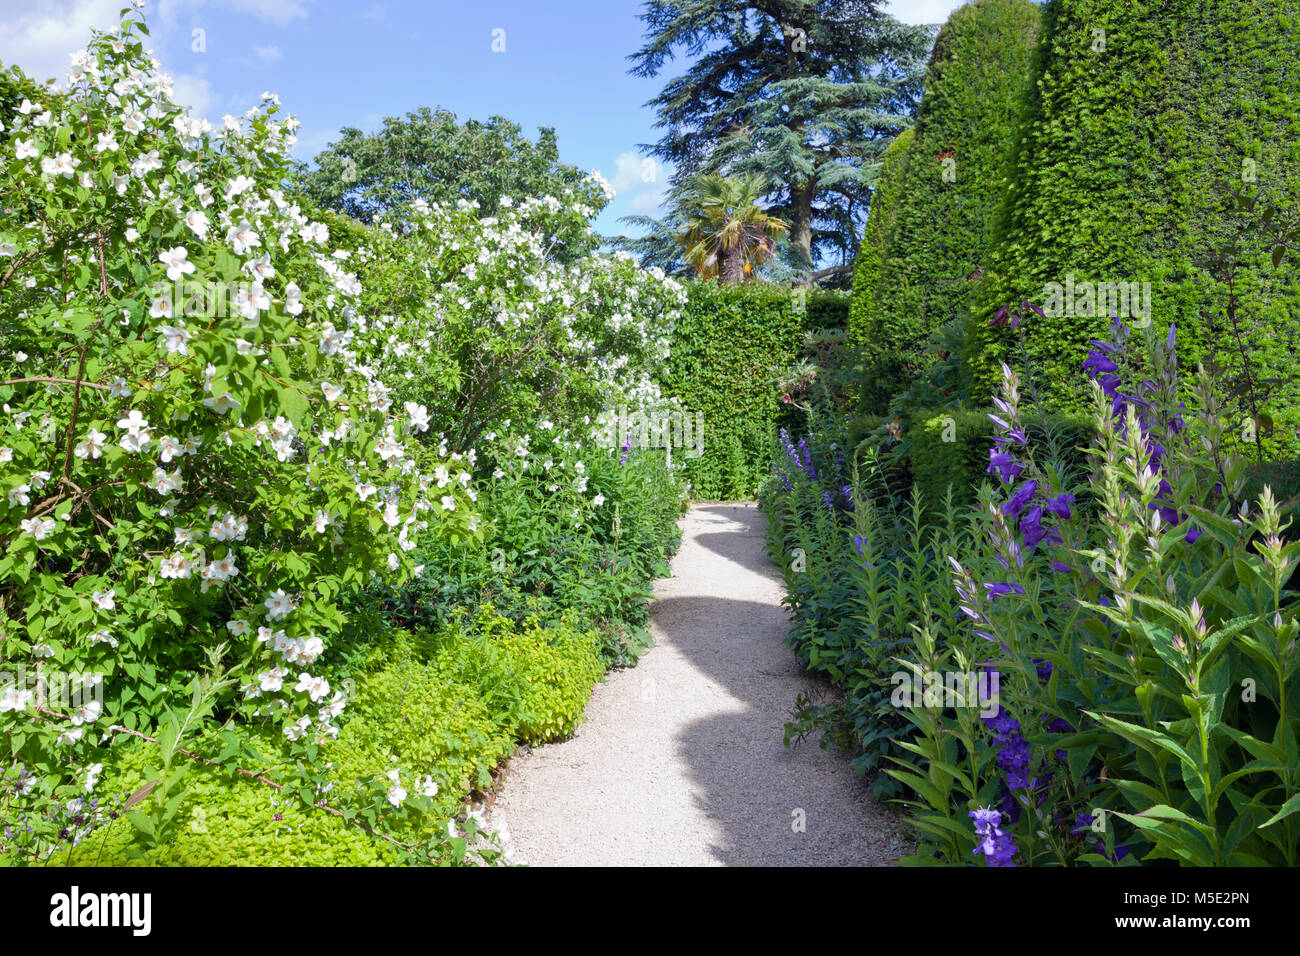 Garden path between yew topiary trees and white flowering shrubs, purple flowers, on a sunny summer day . - Stock Image